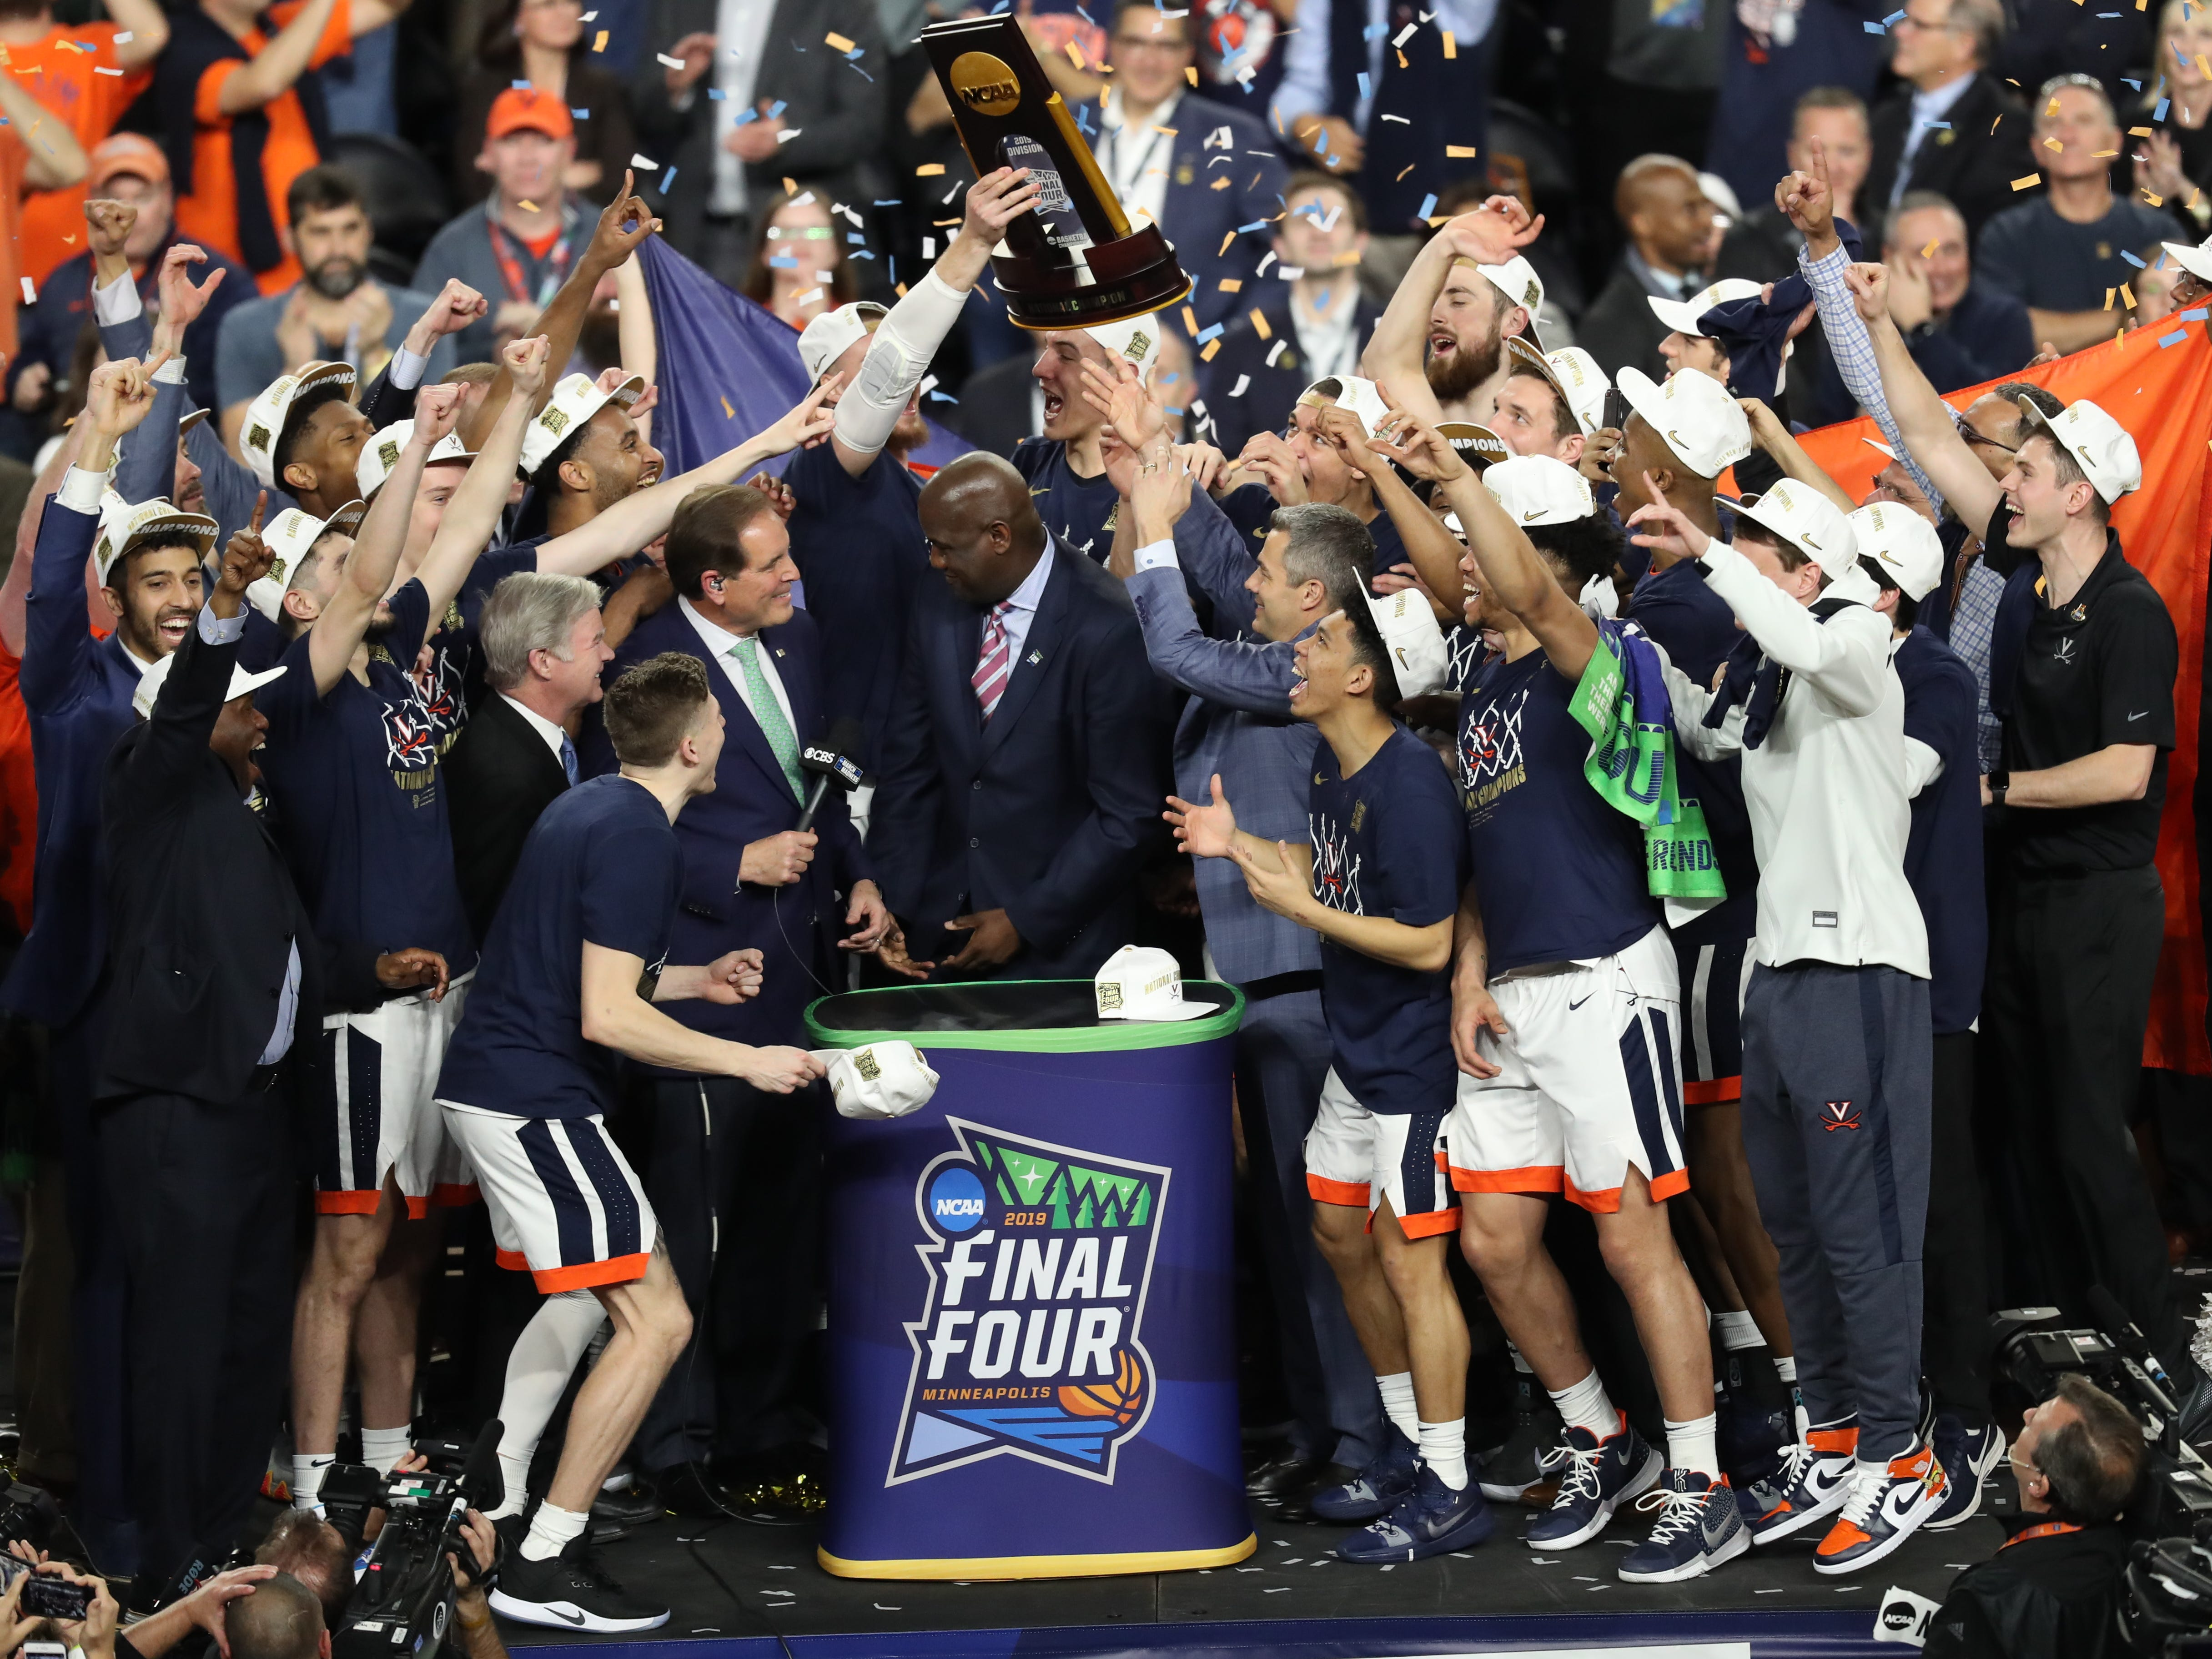 Virginia coach Tony Bennett is presented with the national championship trophy after defeating Texas Tech in the championship game.